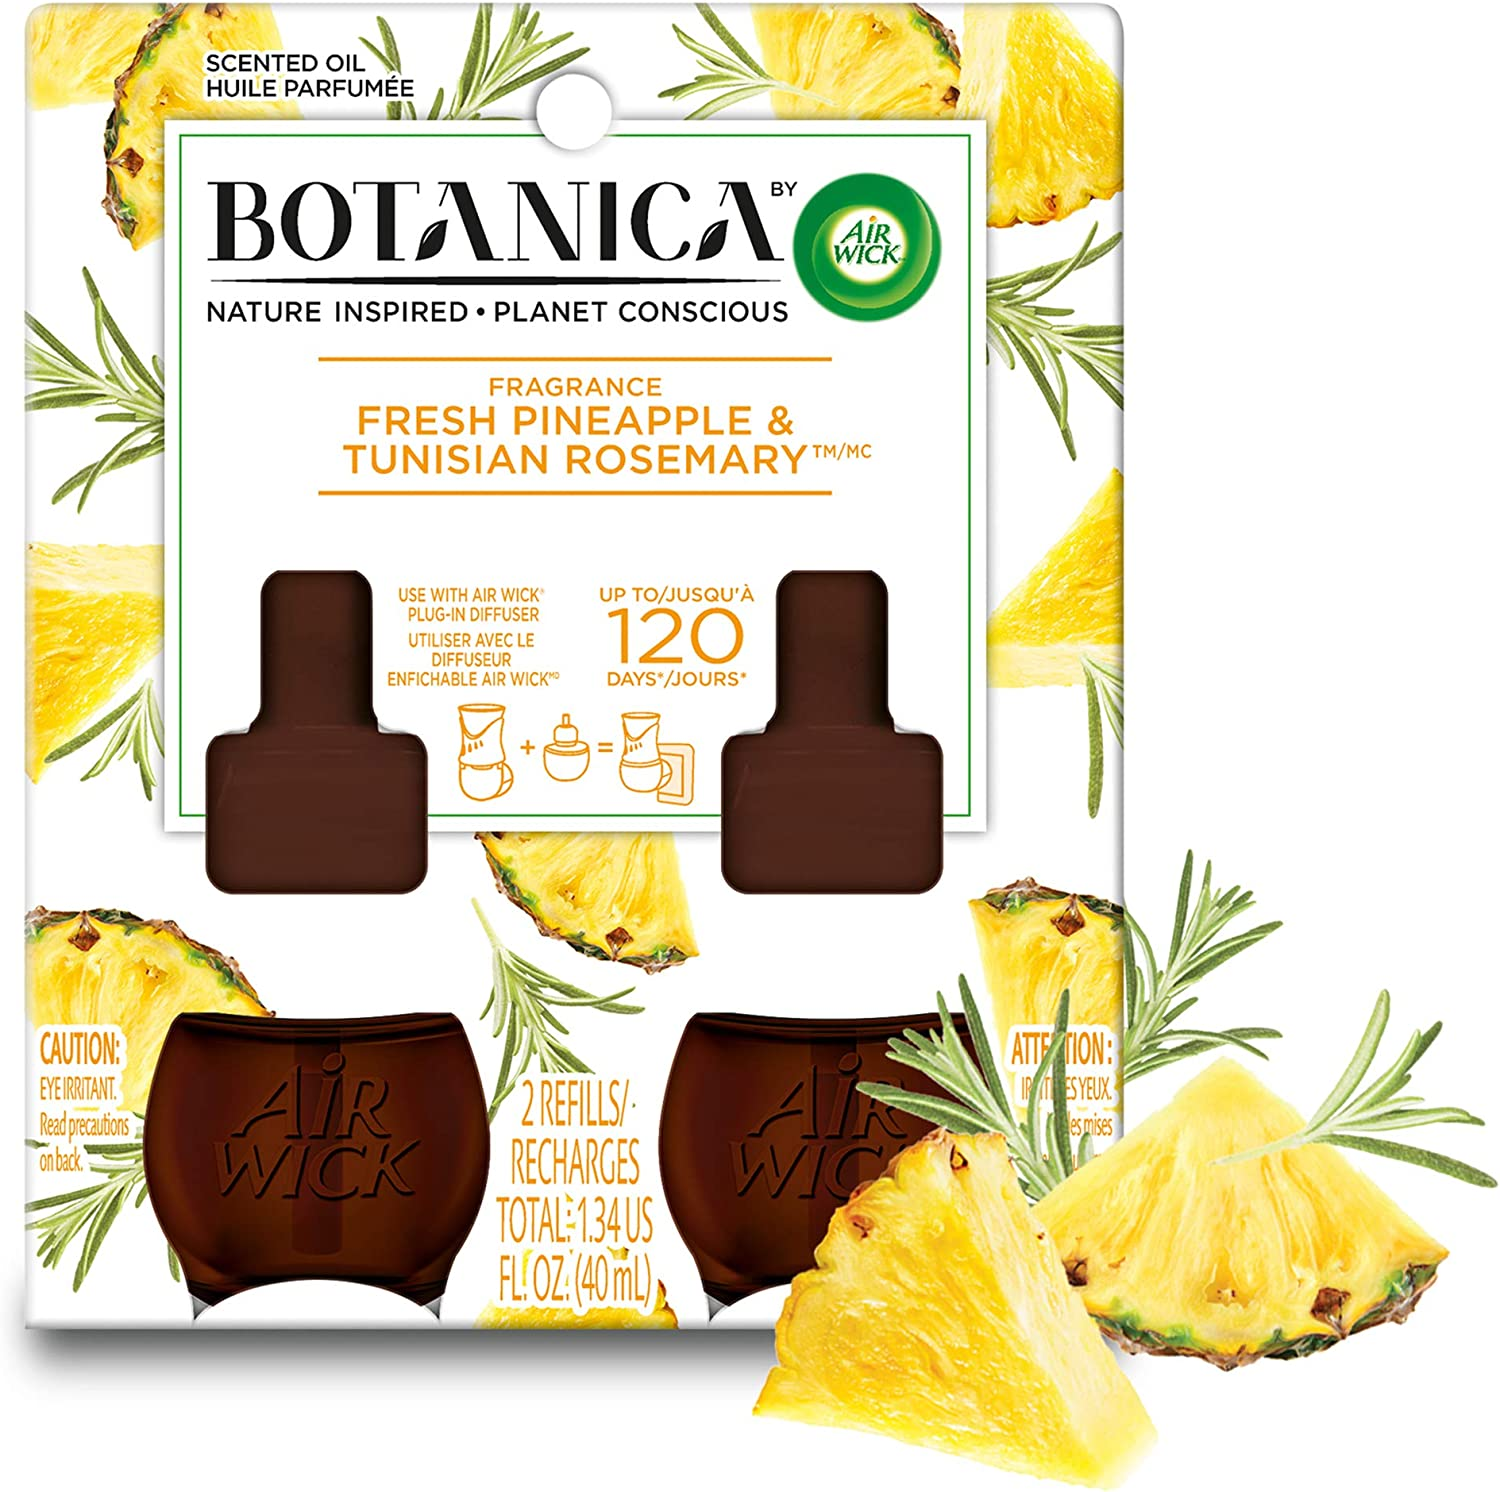 Botanica by Air Wick Plug in Scented Oil Refill, Fresh Pineapple and Tunisian Rosemary, Air Freshener, Essential Oils, (2 Count of 0.67 Fl Oz Refills) 1.34 Fl Oz